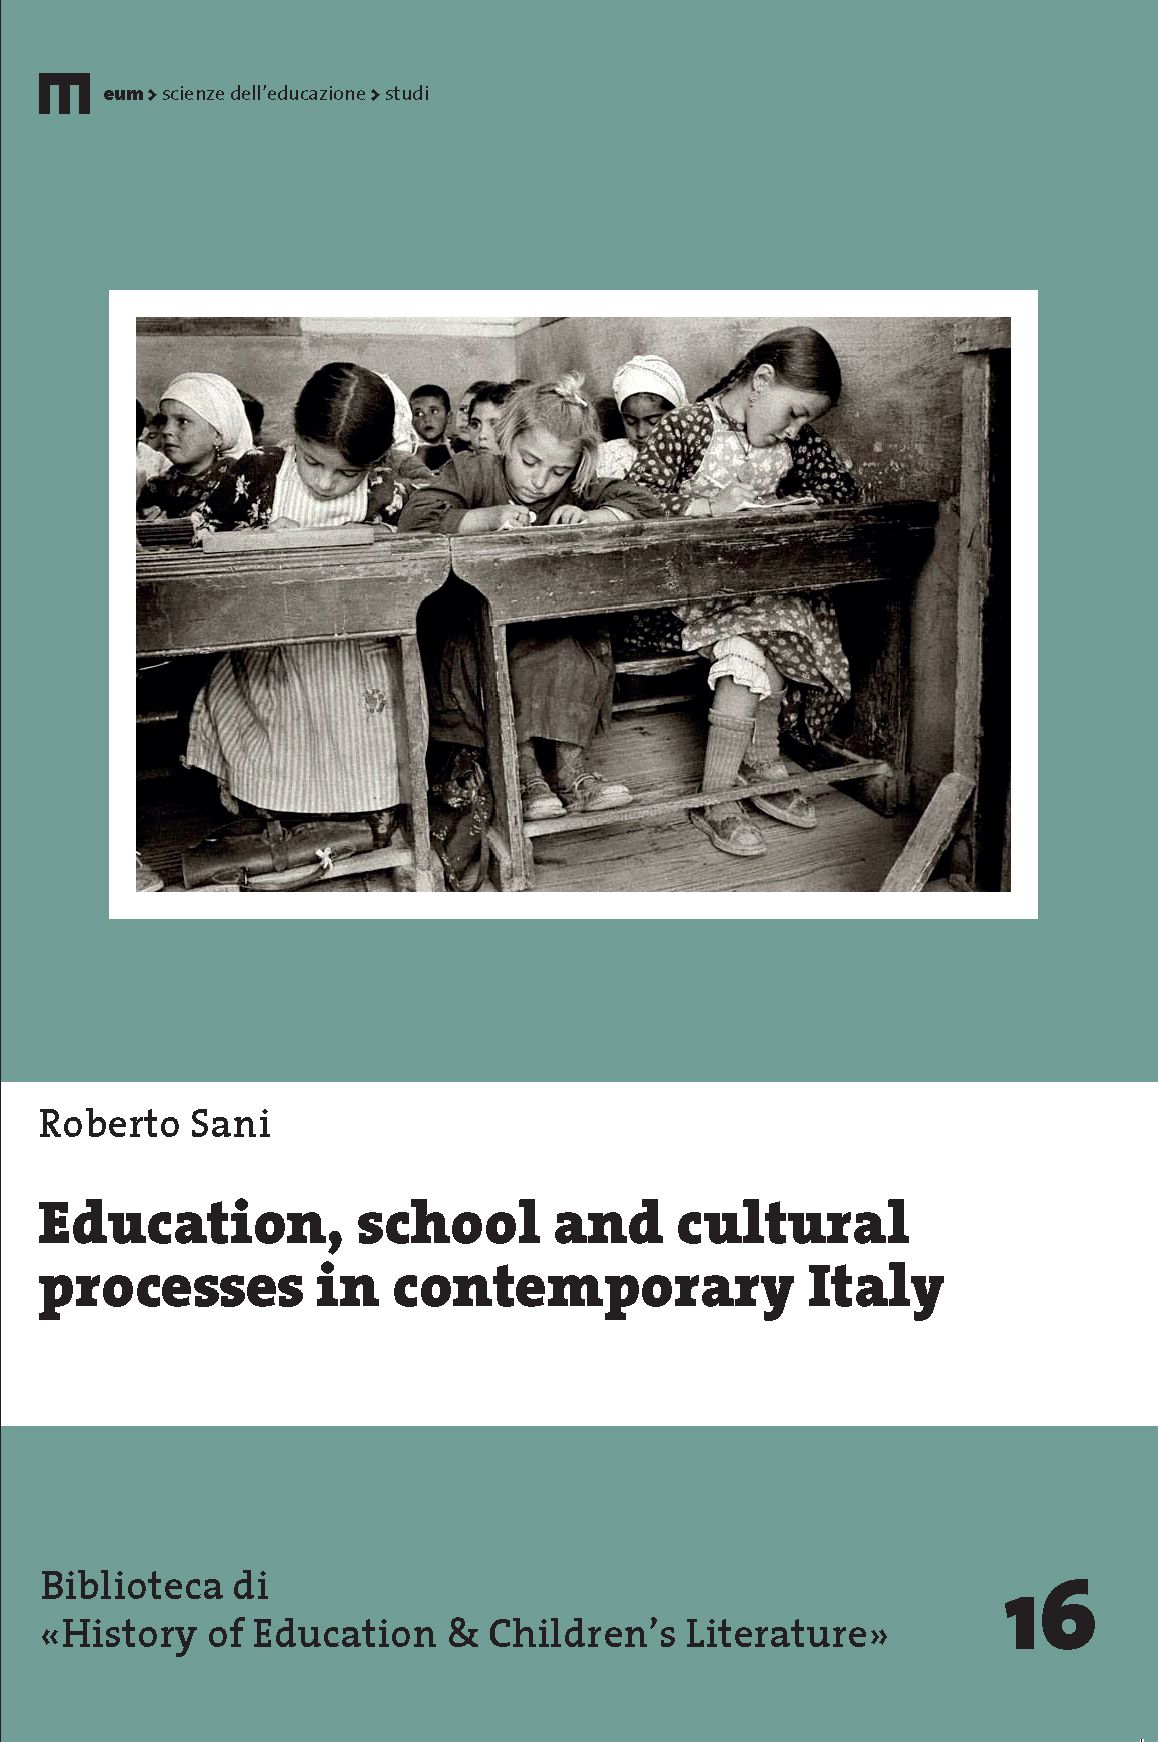 Education, school and cultural processes in contemporary Italy